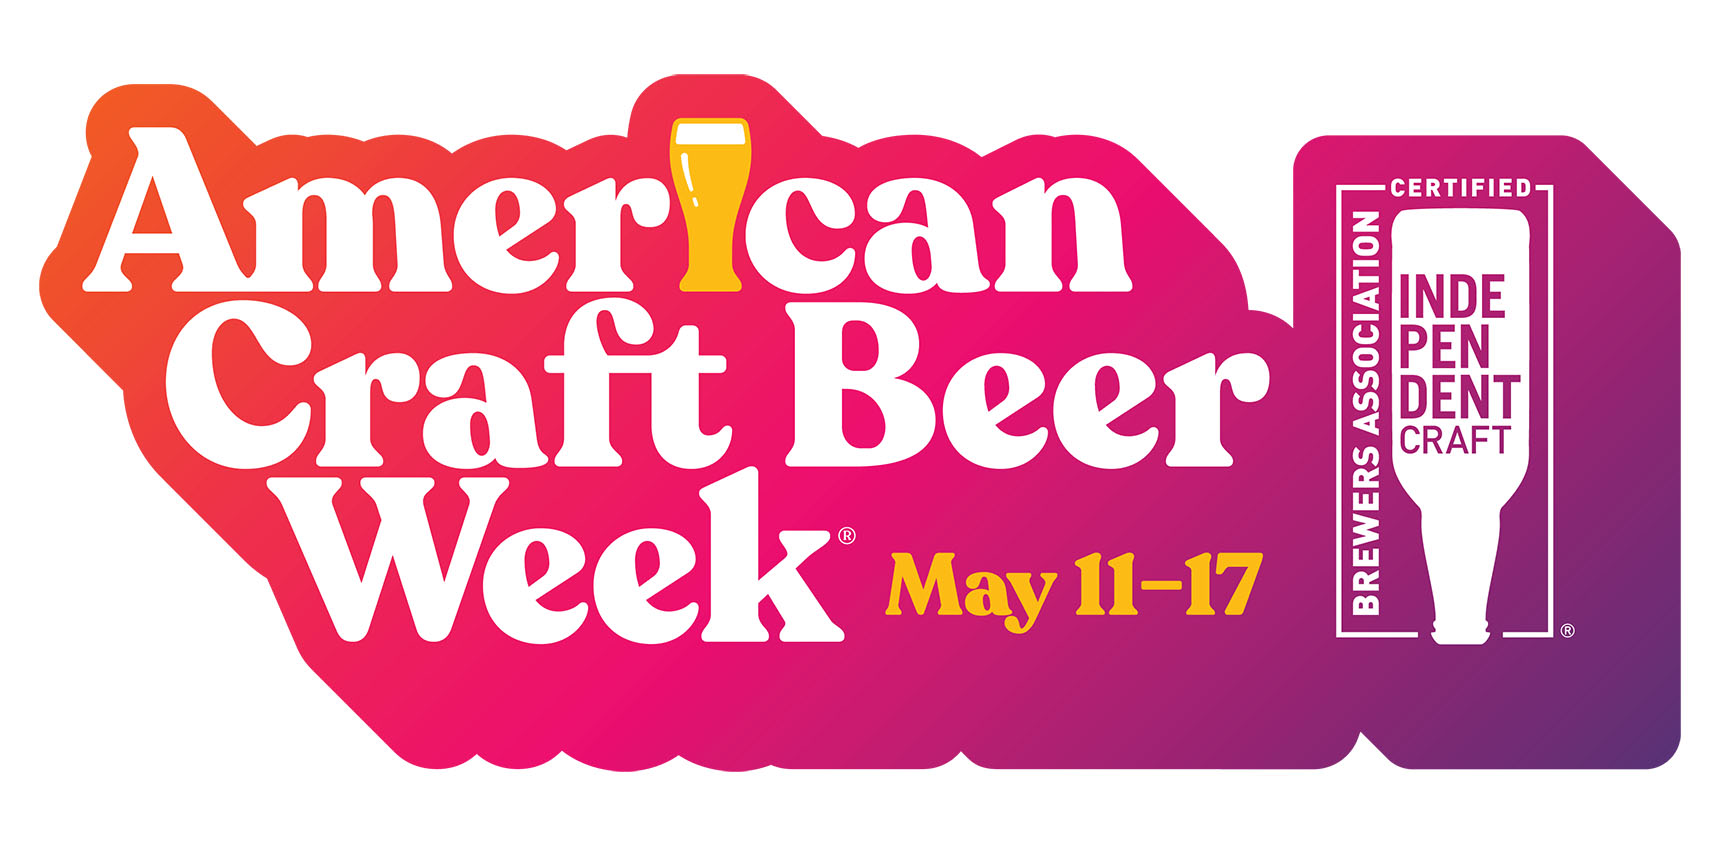 American Craft Beer Week 2020